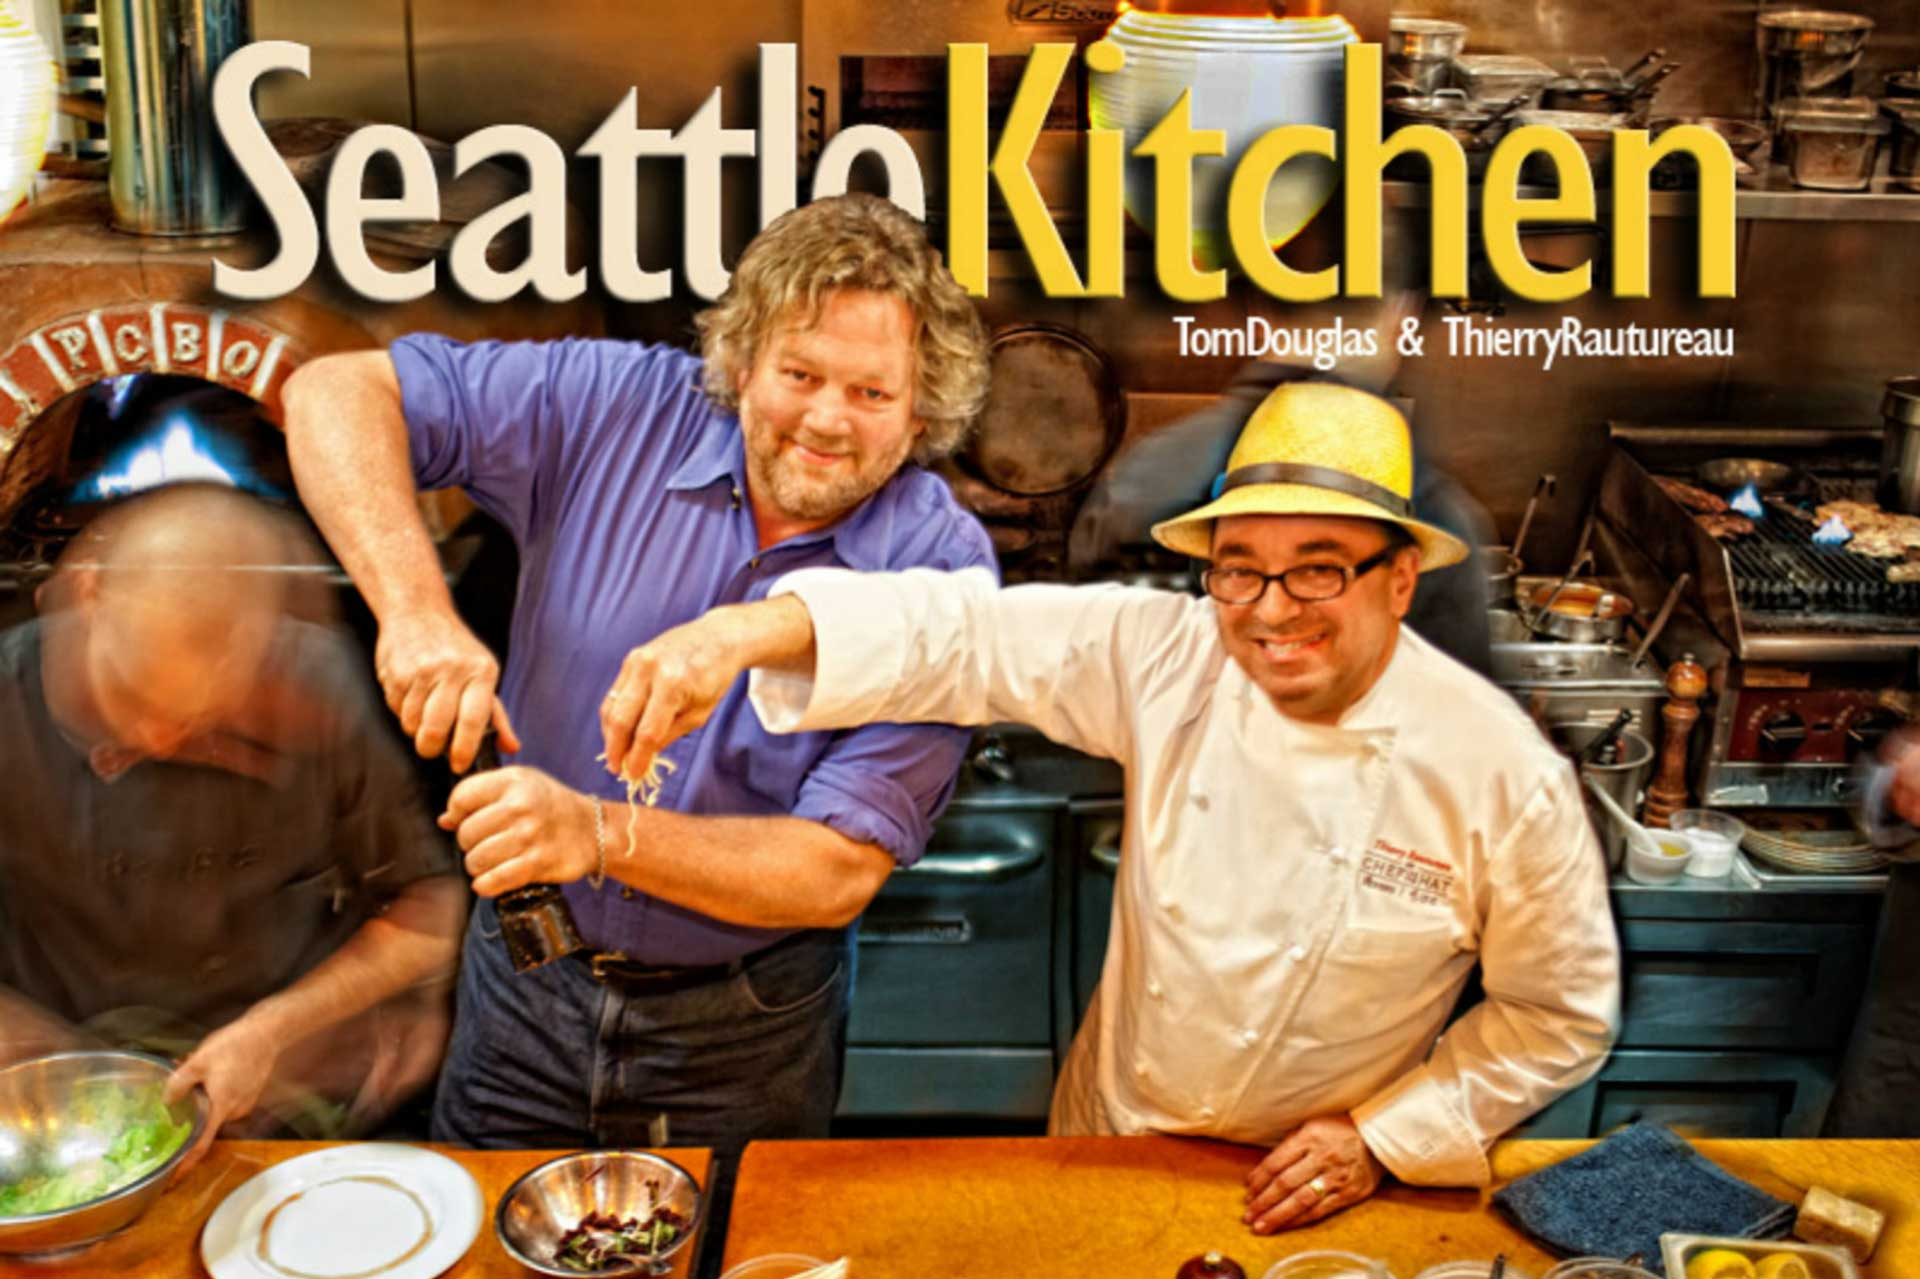 Revolve featured in Seattle Kitchen podcast